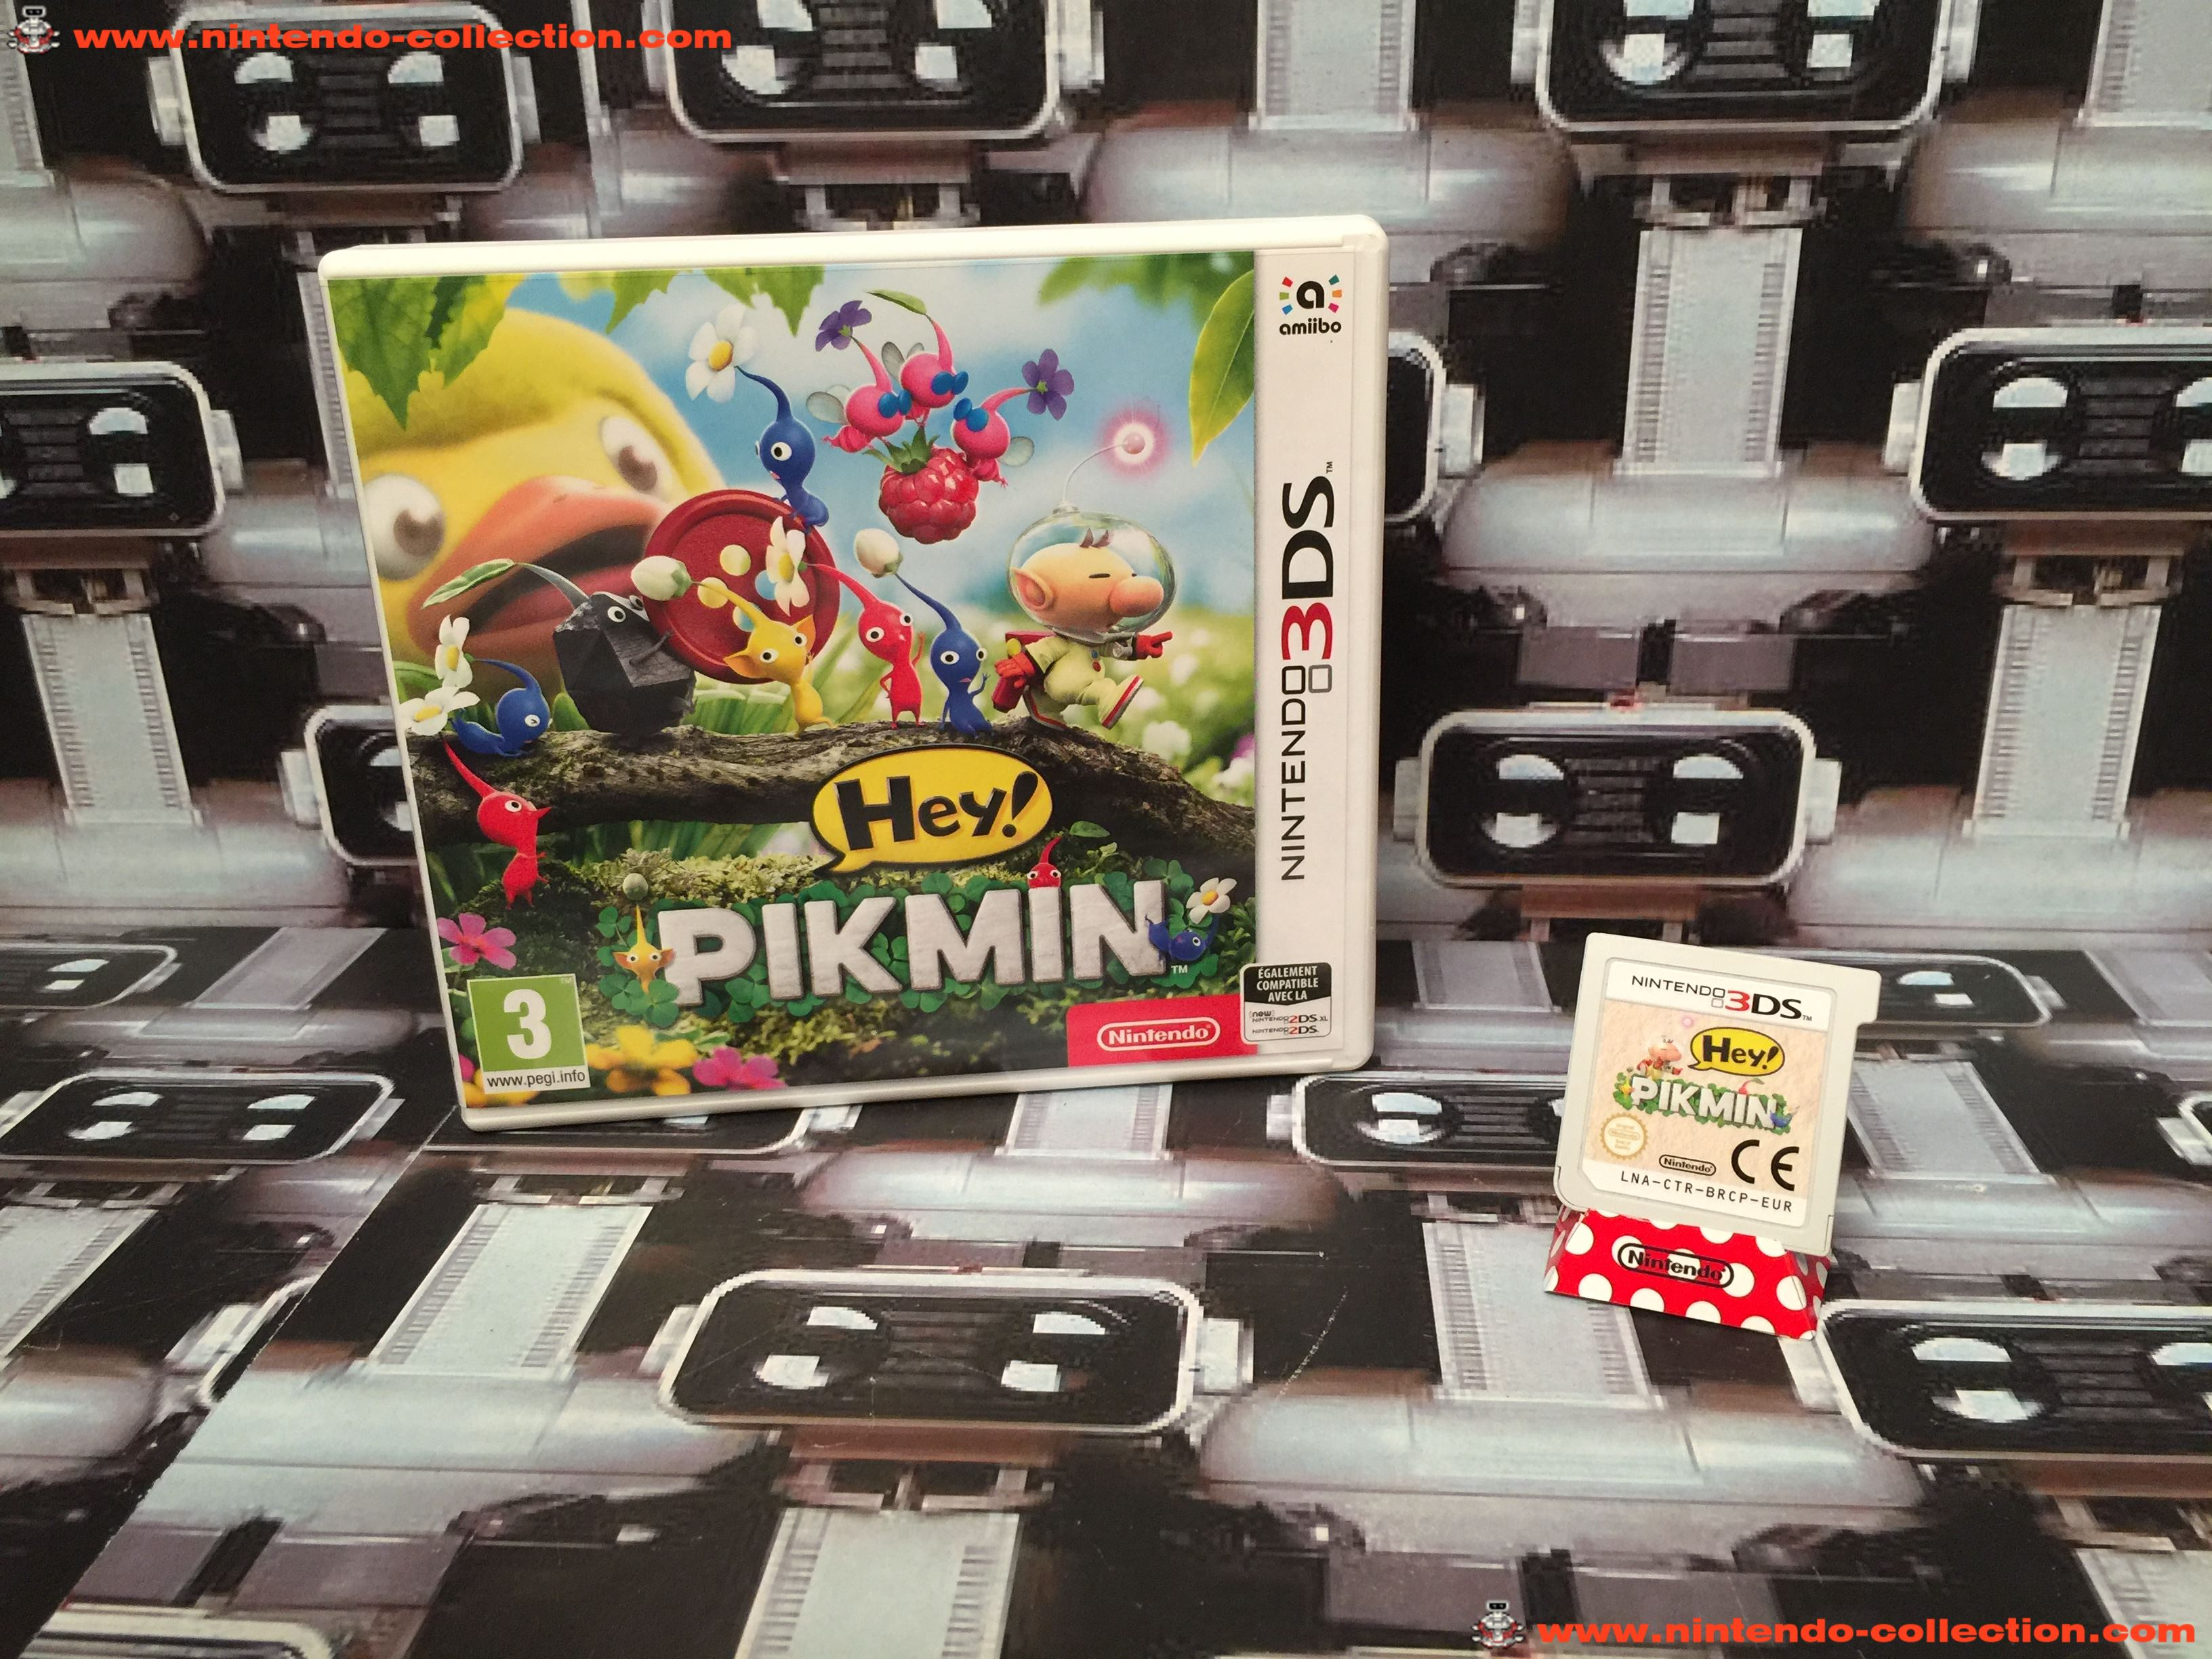 www.nintendo-collection.com - Nintendo 3DS Jeux Game Hey! Pikmin